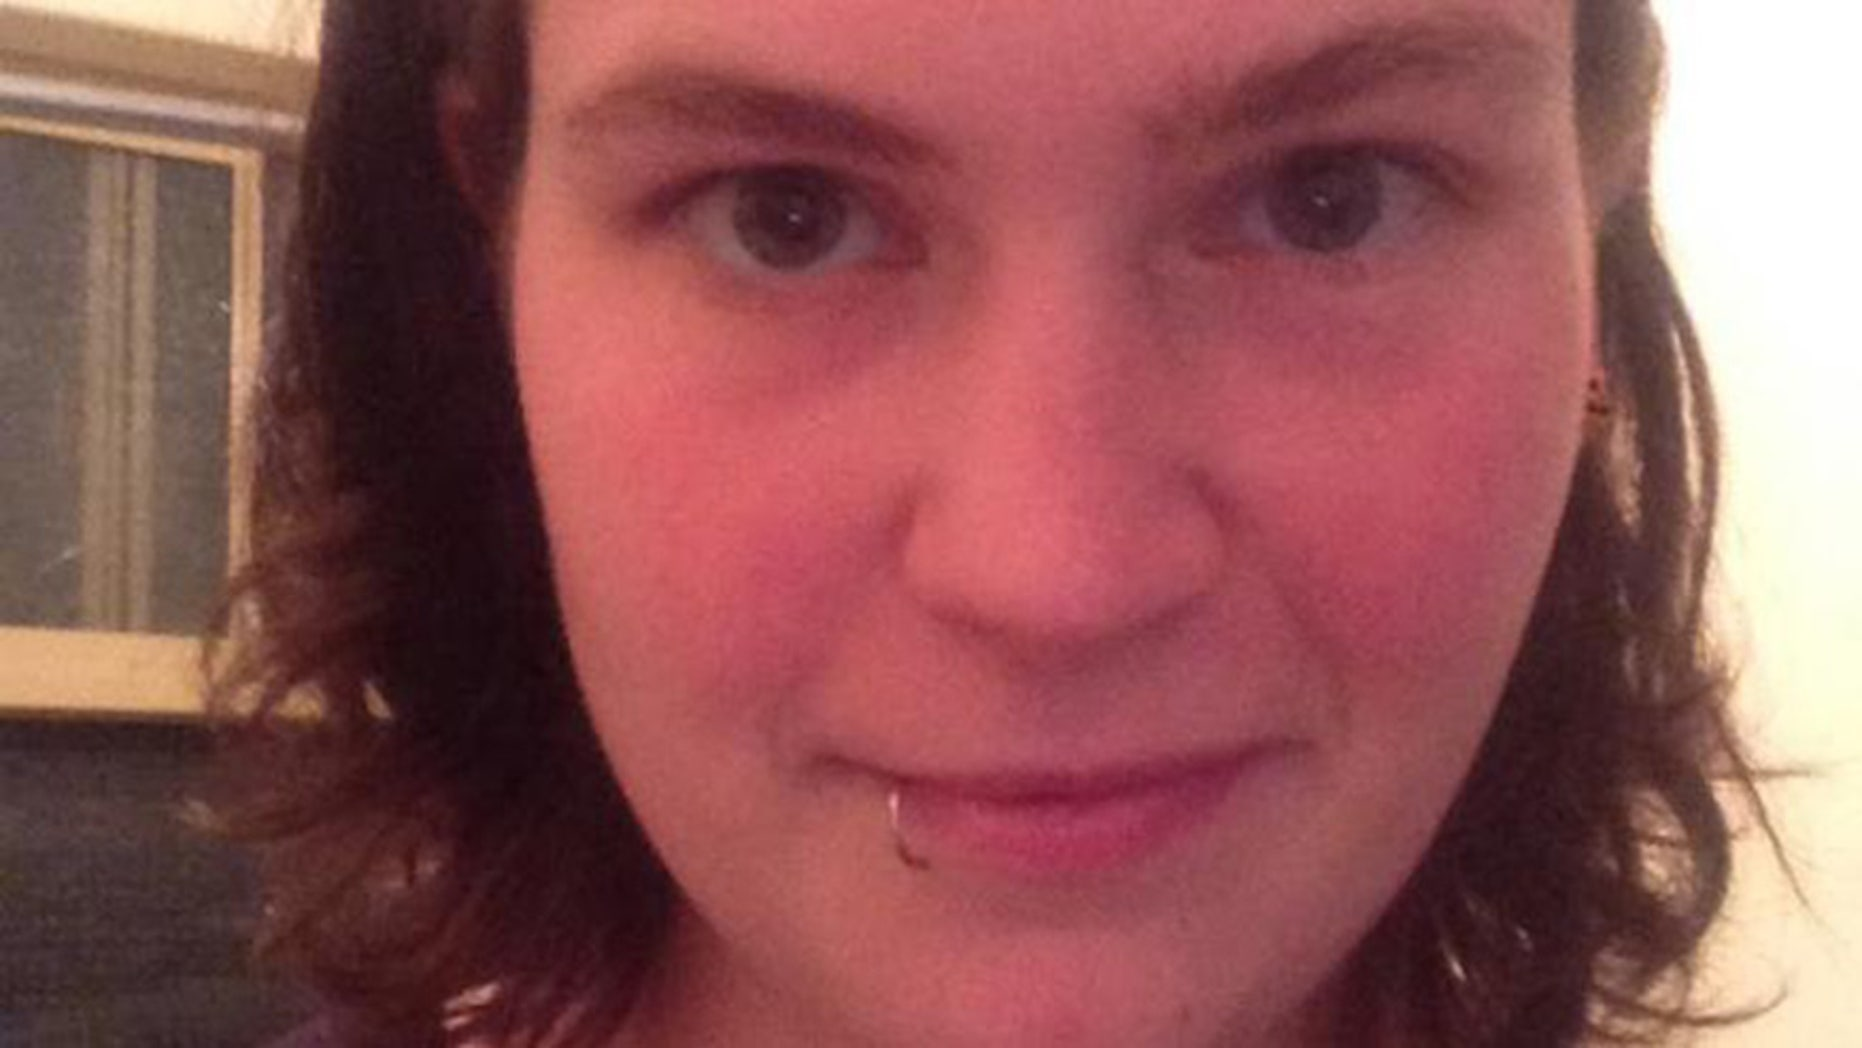 Police said Jemma Lilley wanted to kill someone before she turned 25.